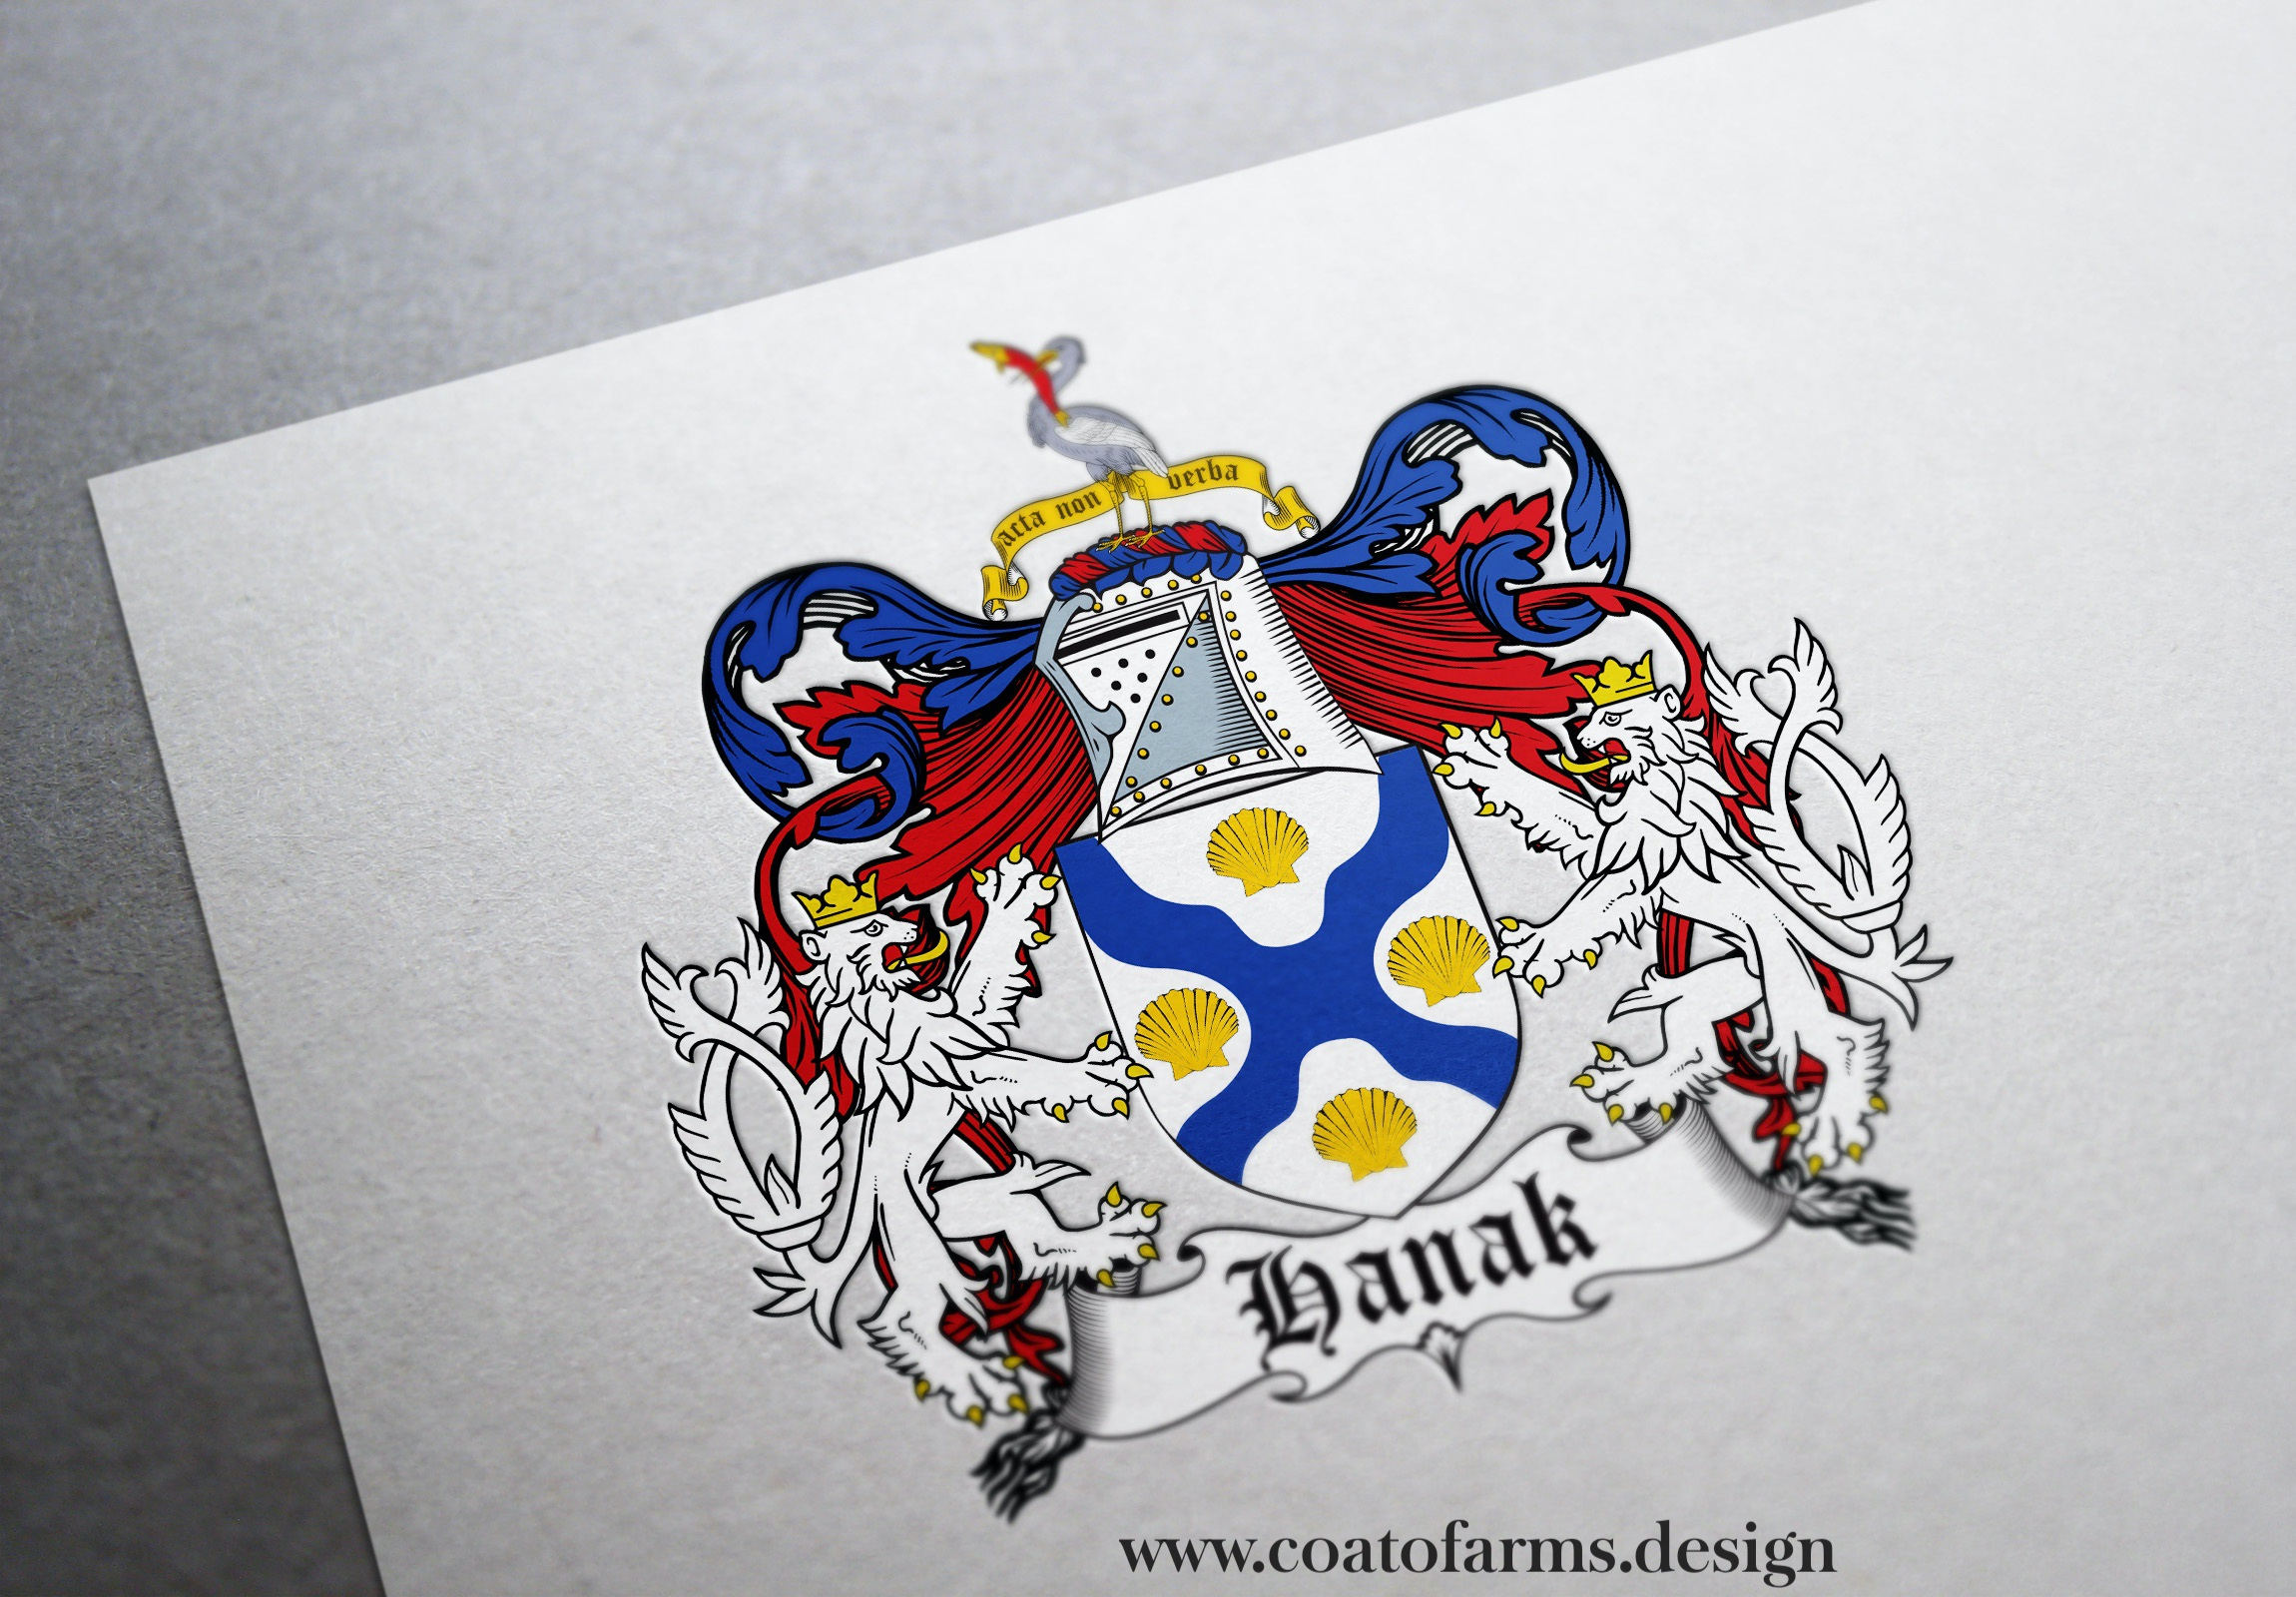 Coat of arms (family crest) I designed for a Hank family from the USA